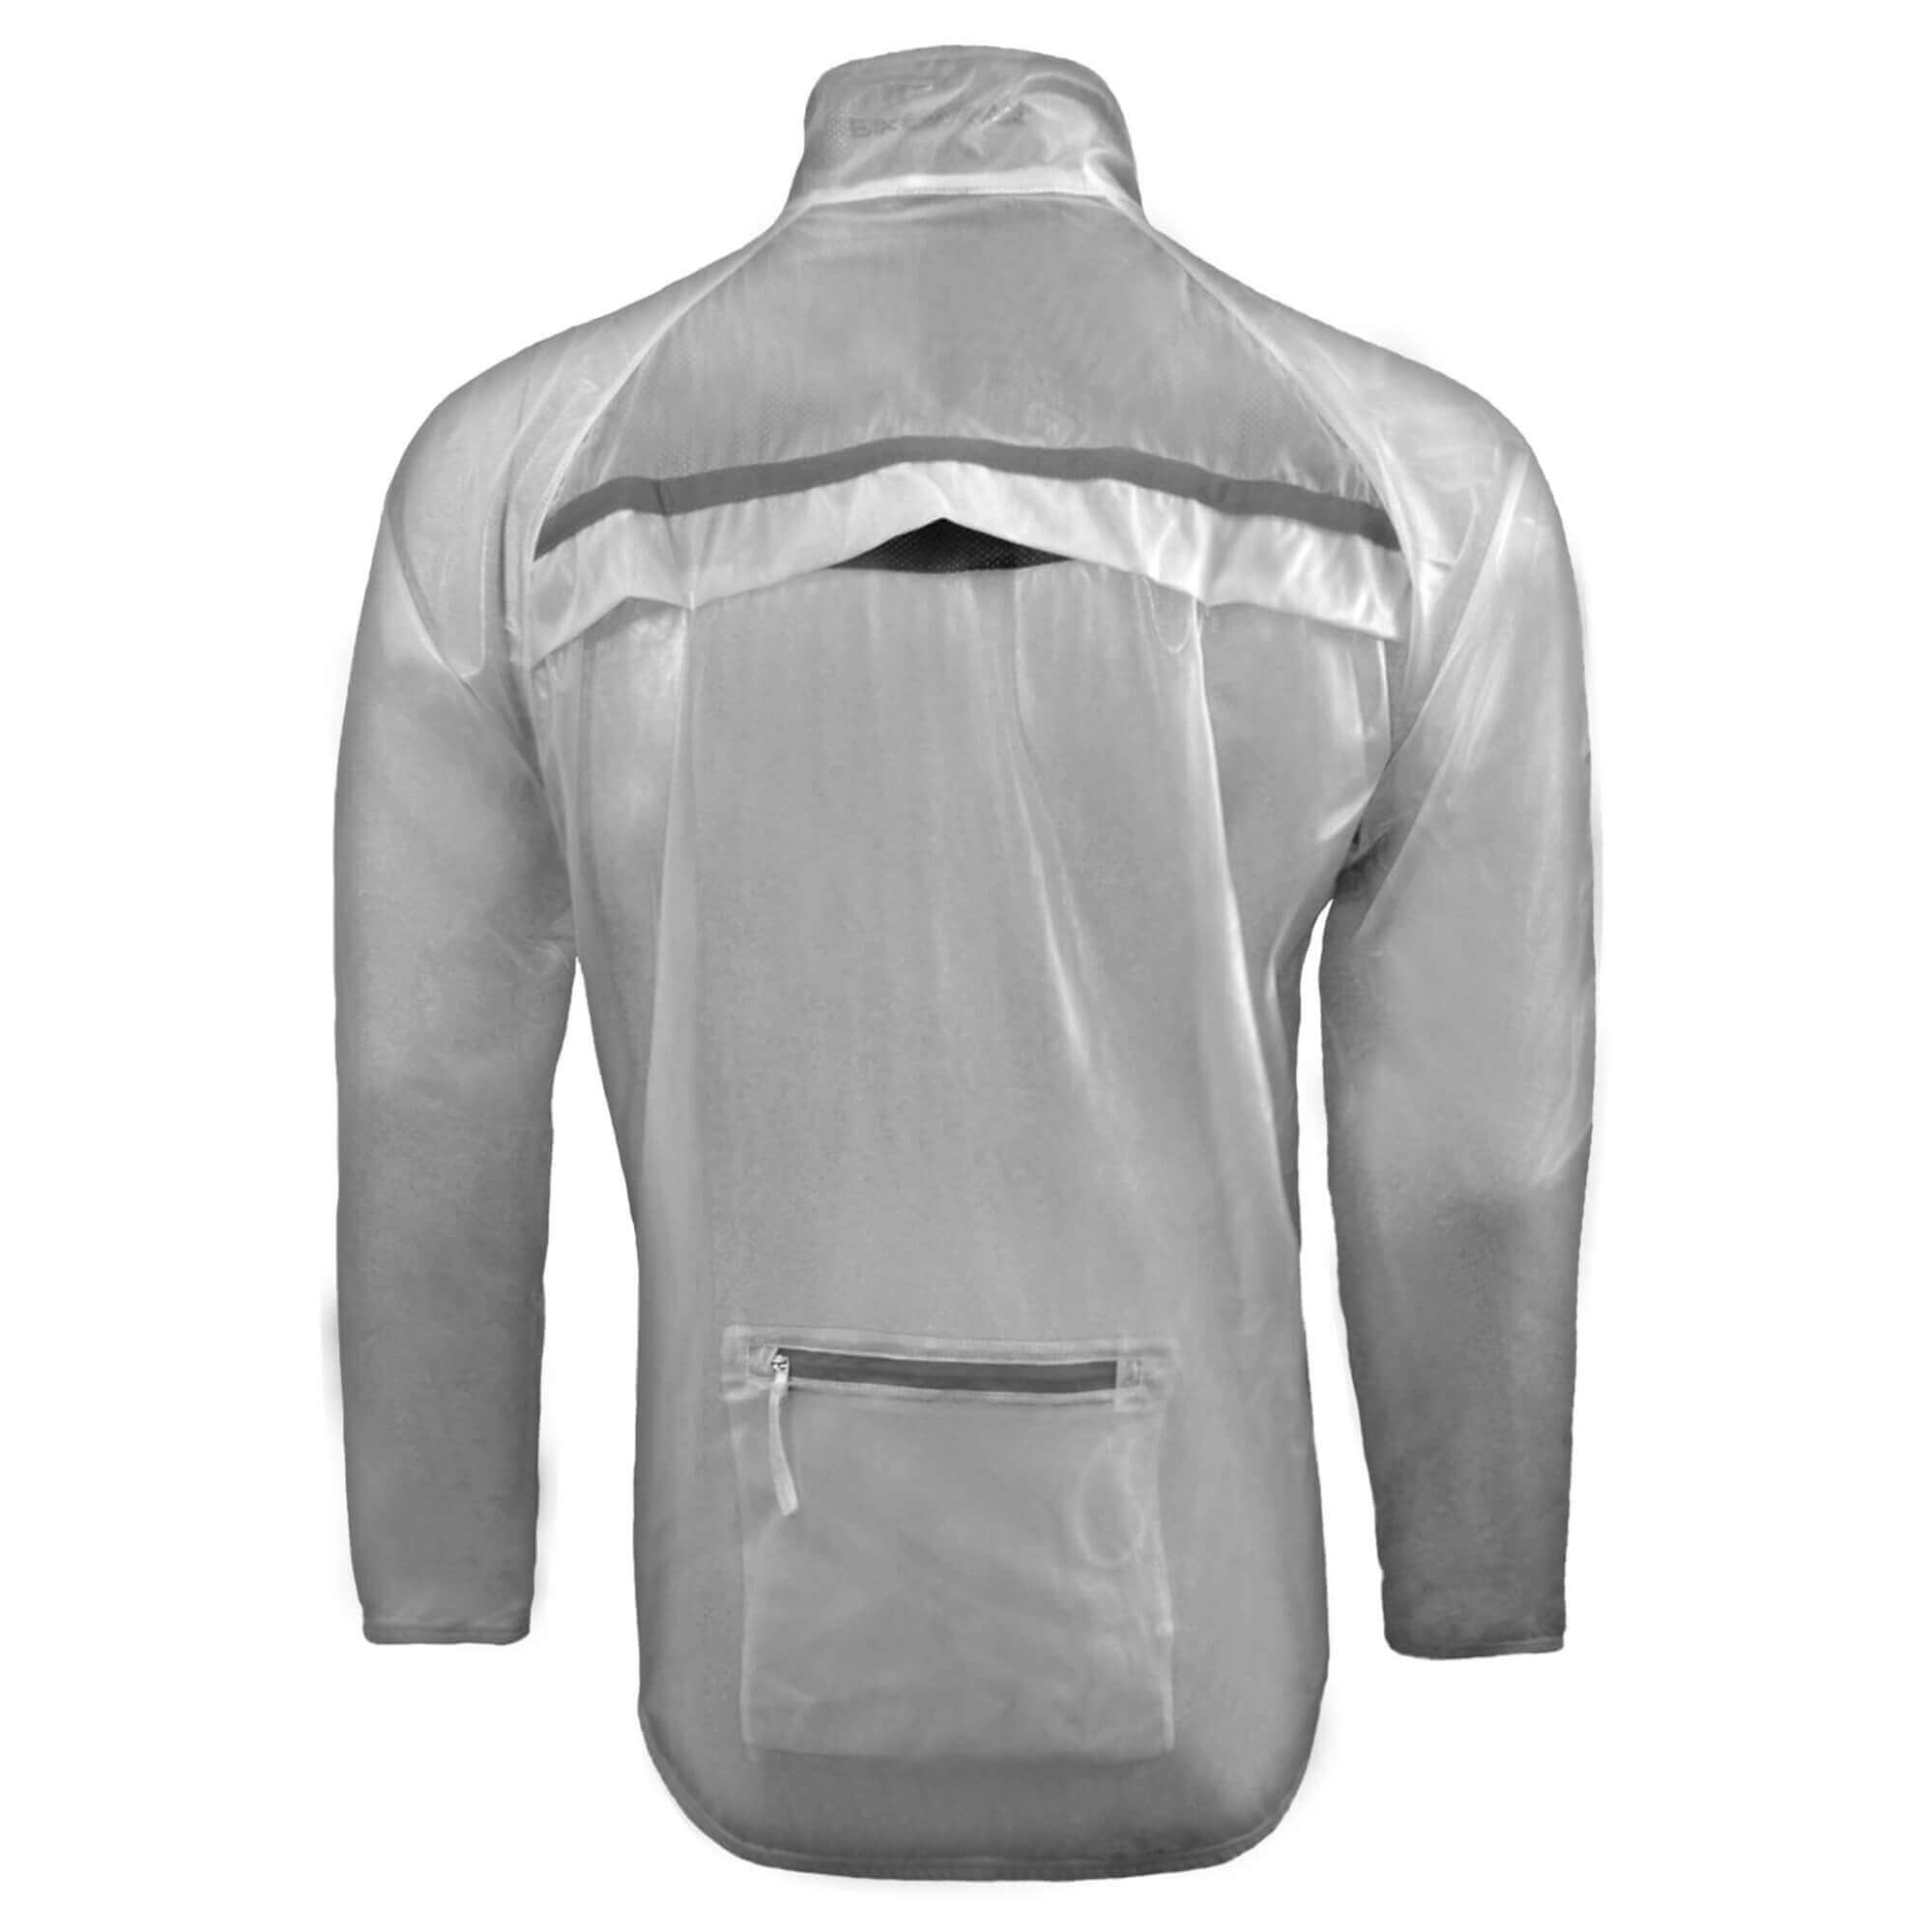 lecco men Racing in wet conditions keep your team logo clearly displayed with the lecco rain jacket its transparent shell is water-repellent and windproof, exposing your jersey logo while protecting.